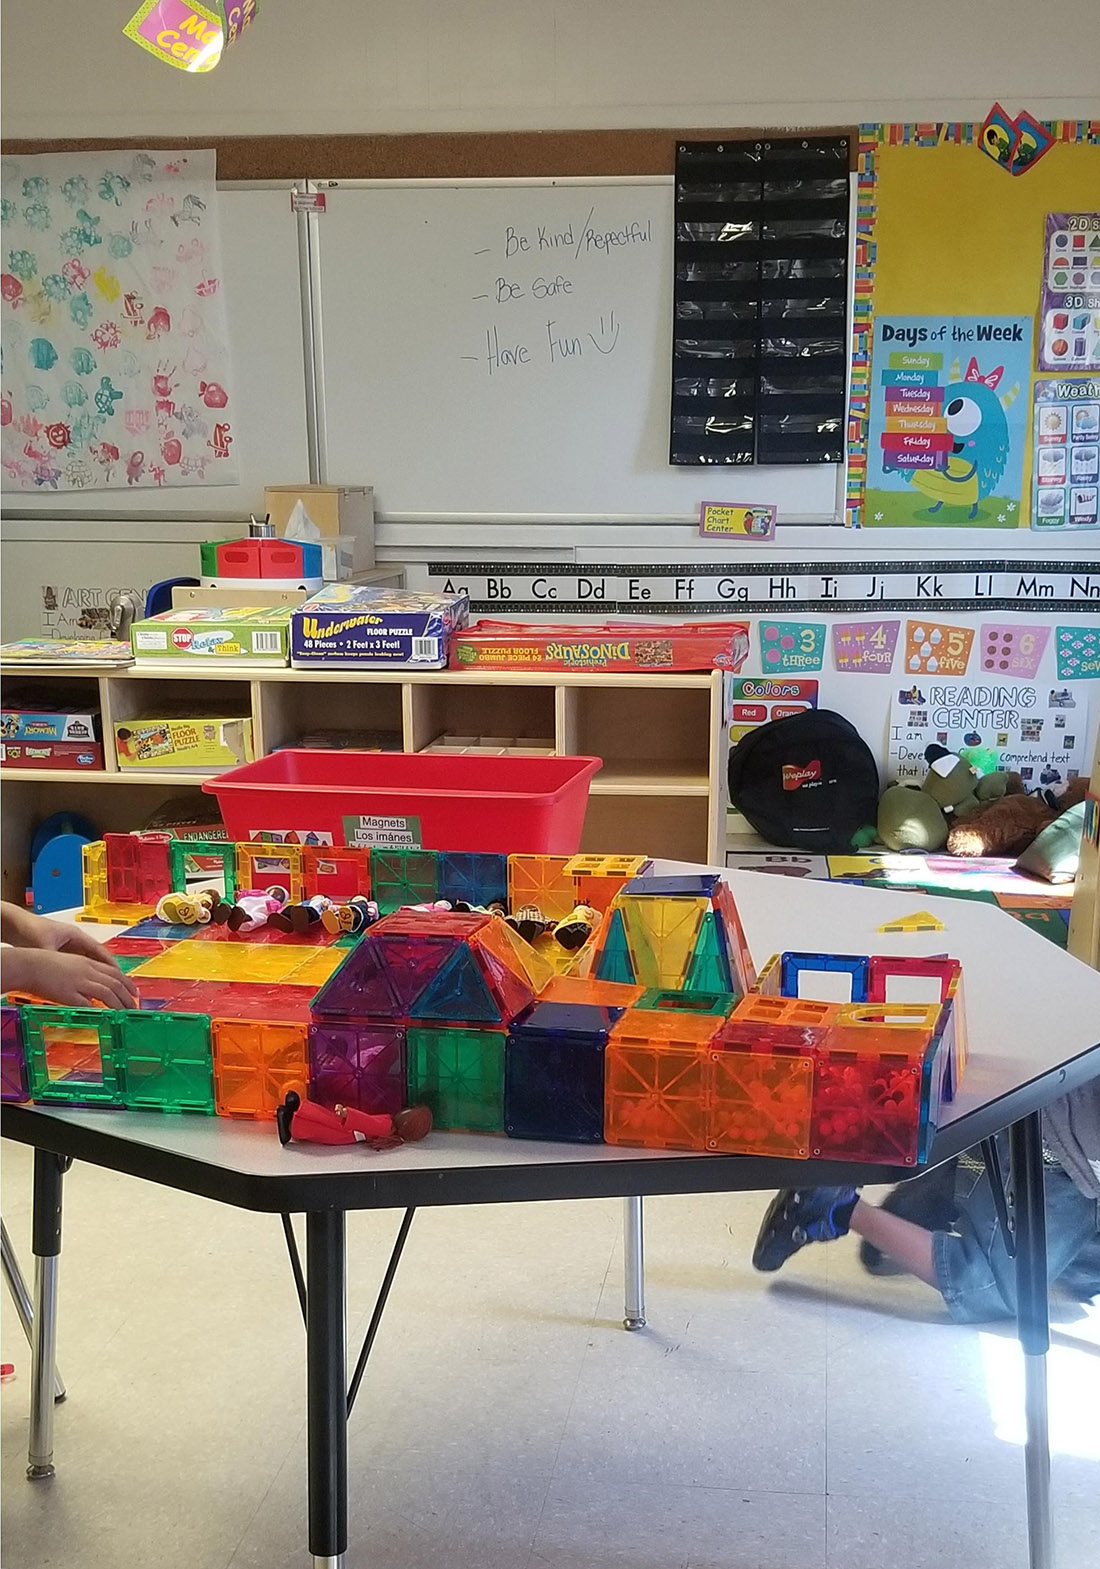 Building blocks and fun shapes Childcare Center and daycare at New Beginnings